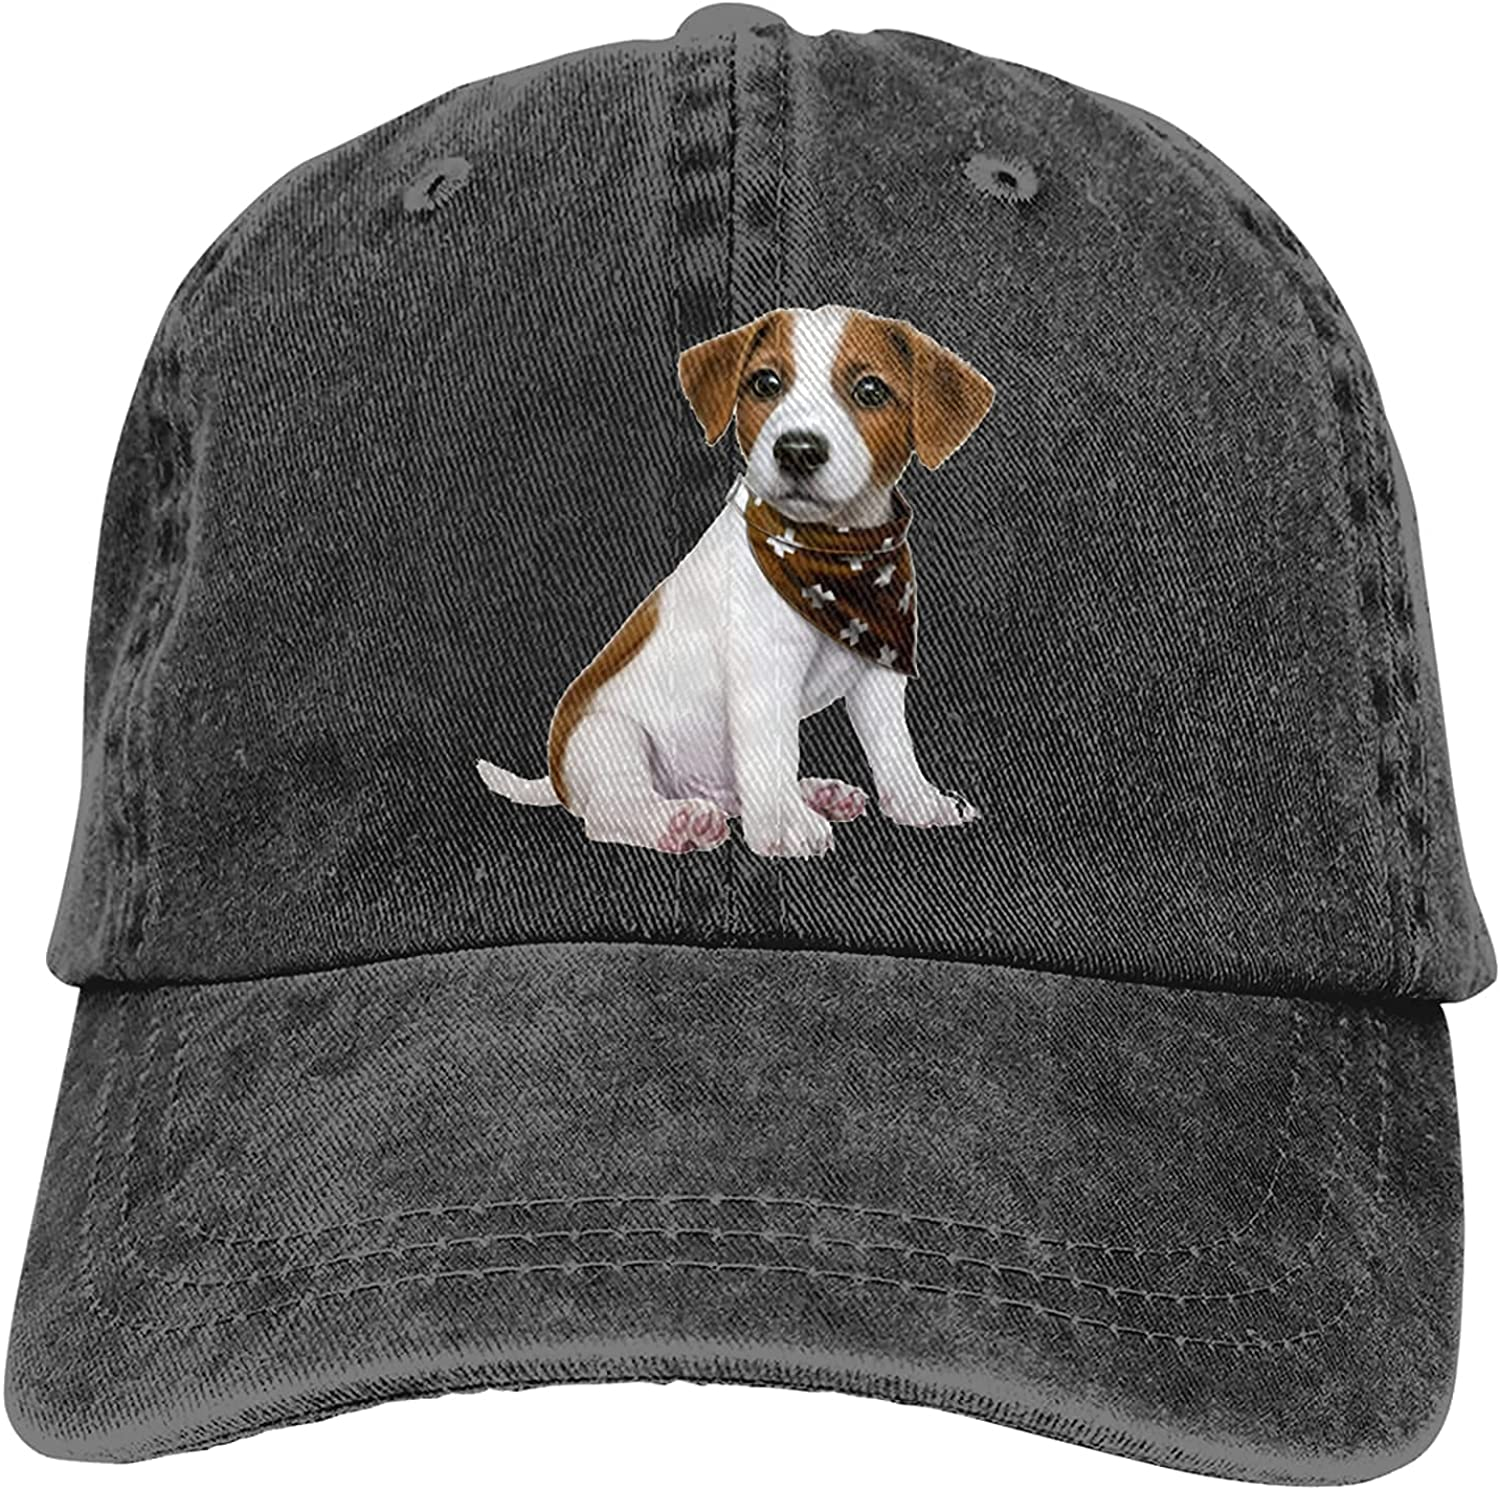 Cute Dogs Sports Baseball Cap Trucker Su Hat Adjustable Max 83% OFF Washable Selling and selling